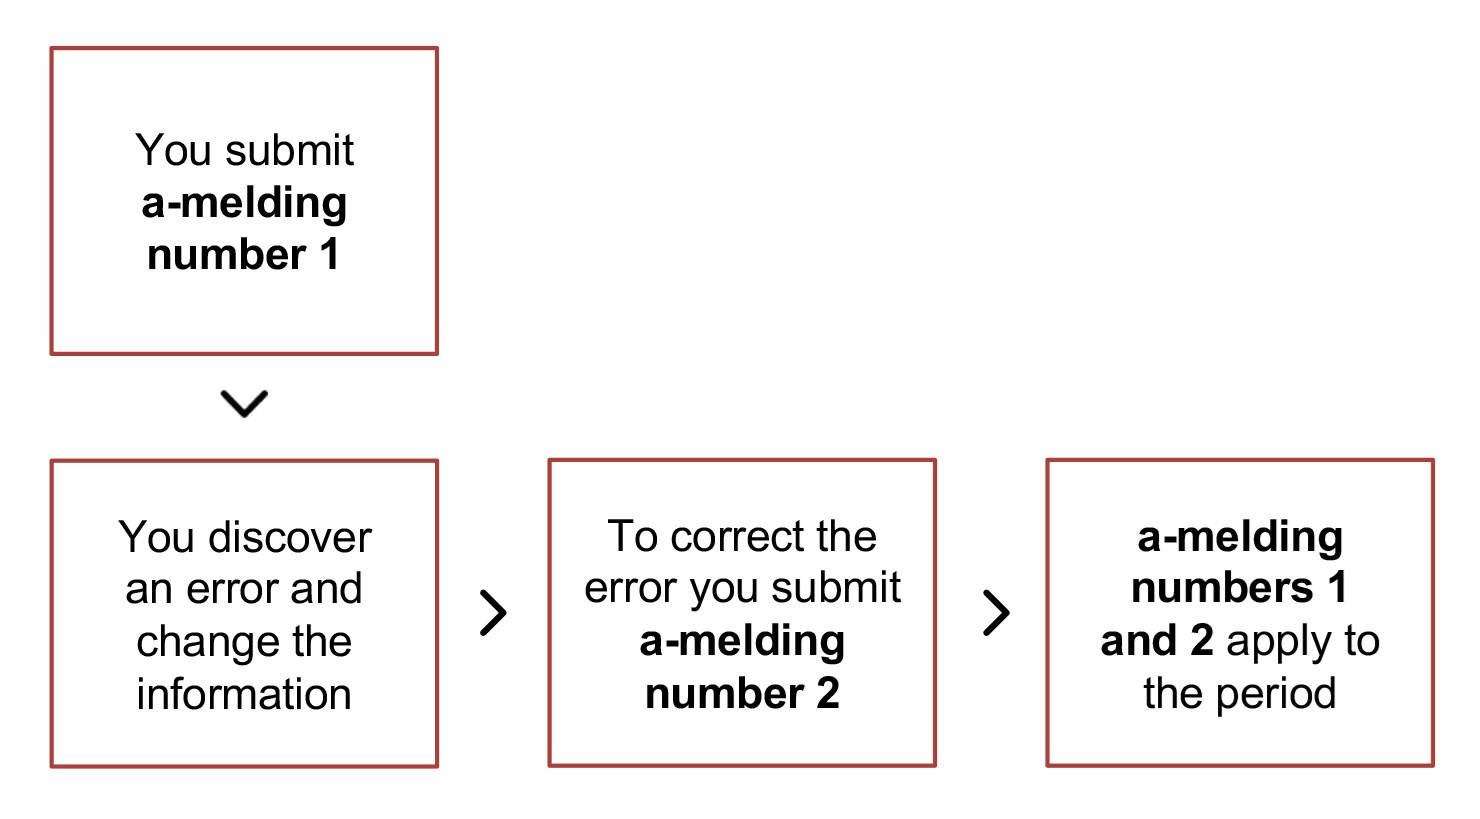 Diagram. Submit a-melding number 1. Correct errors or omissions. Submit a-melding number 2. A-meldings 1 and 2 apply to the period. The text in the article explains this in more detail.